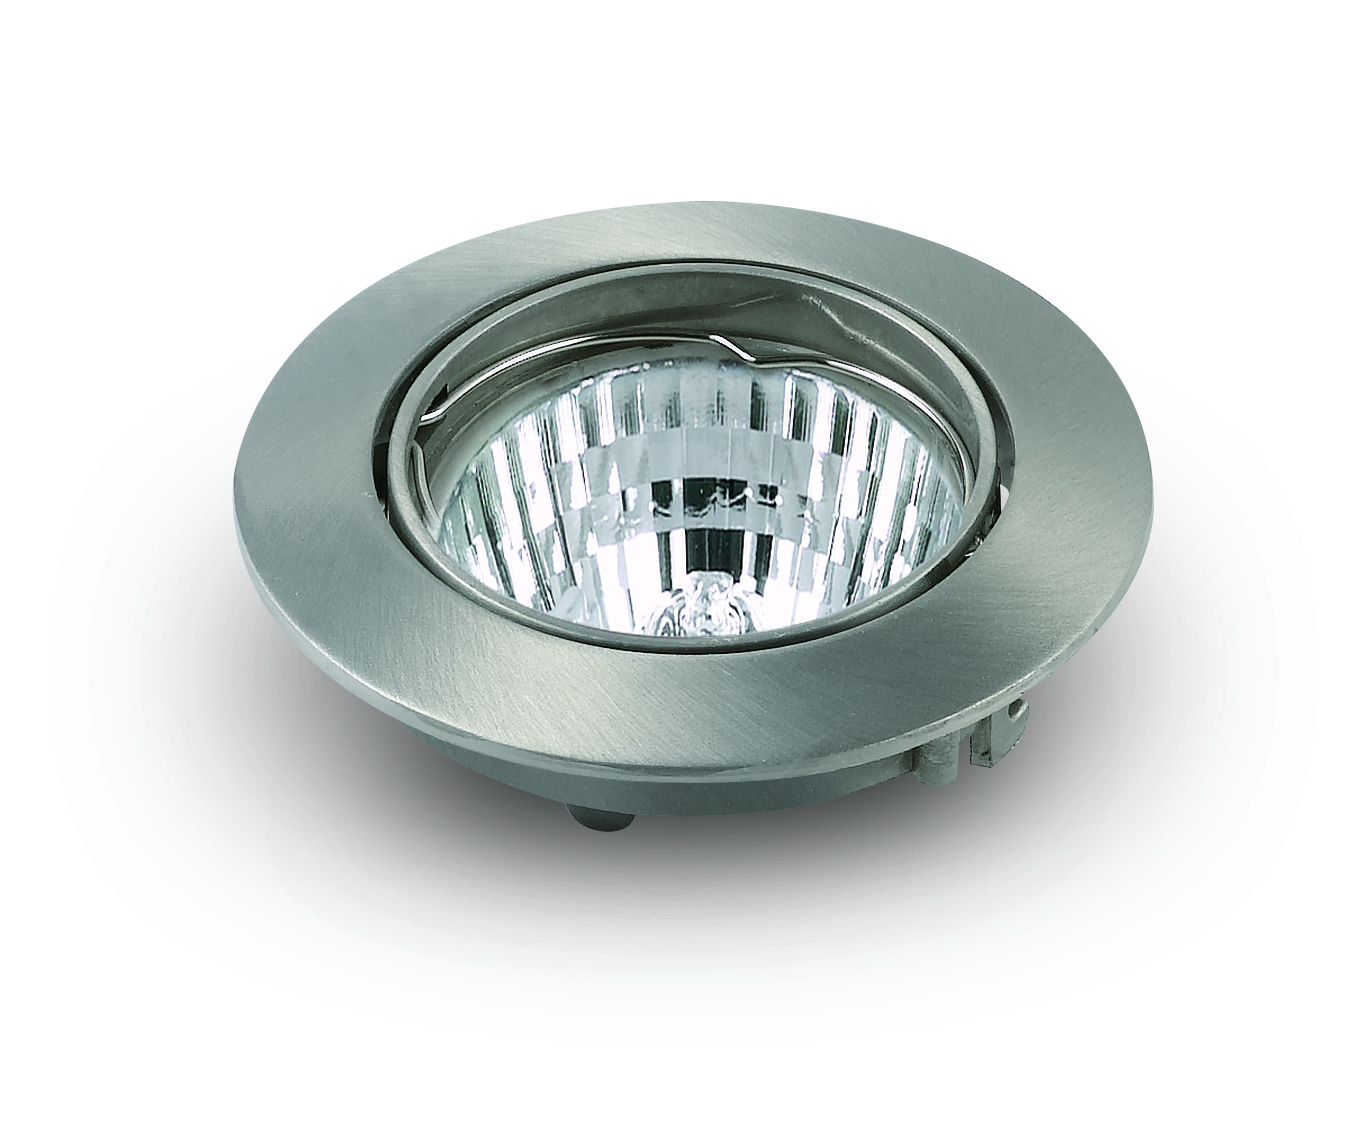 GU10,G5.3 ceiling light fixture gu10 downlights round indoor recessed aluminium fixed light body down light